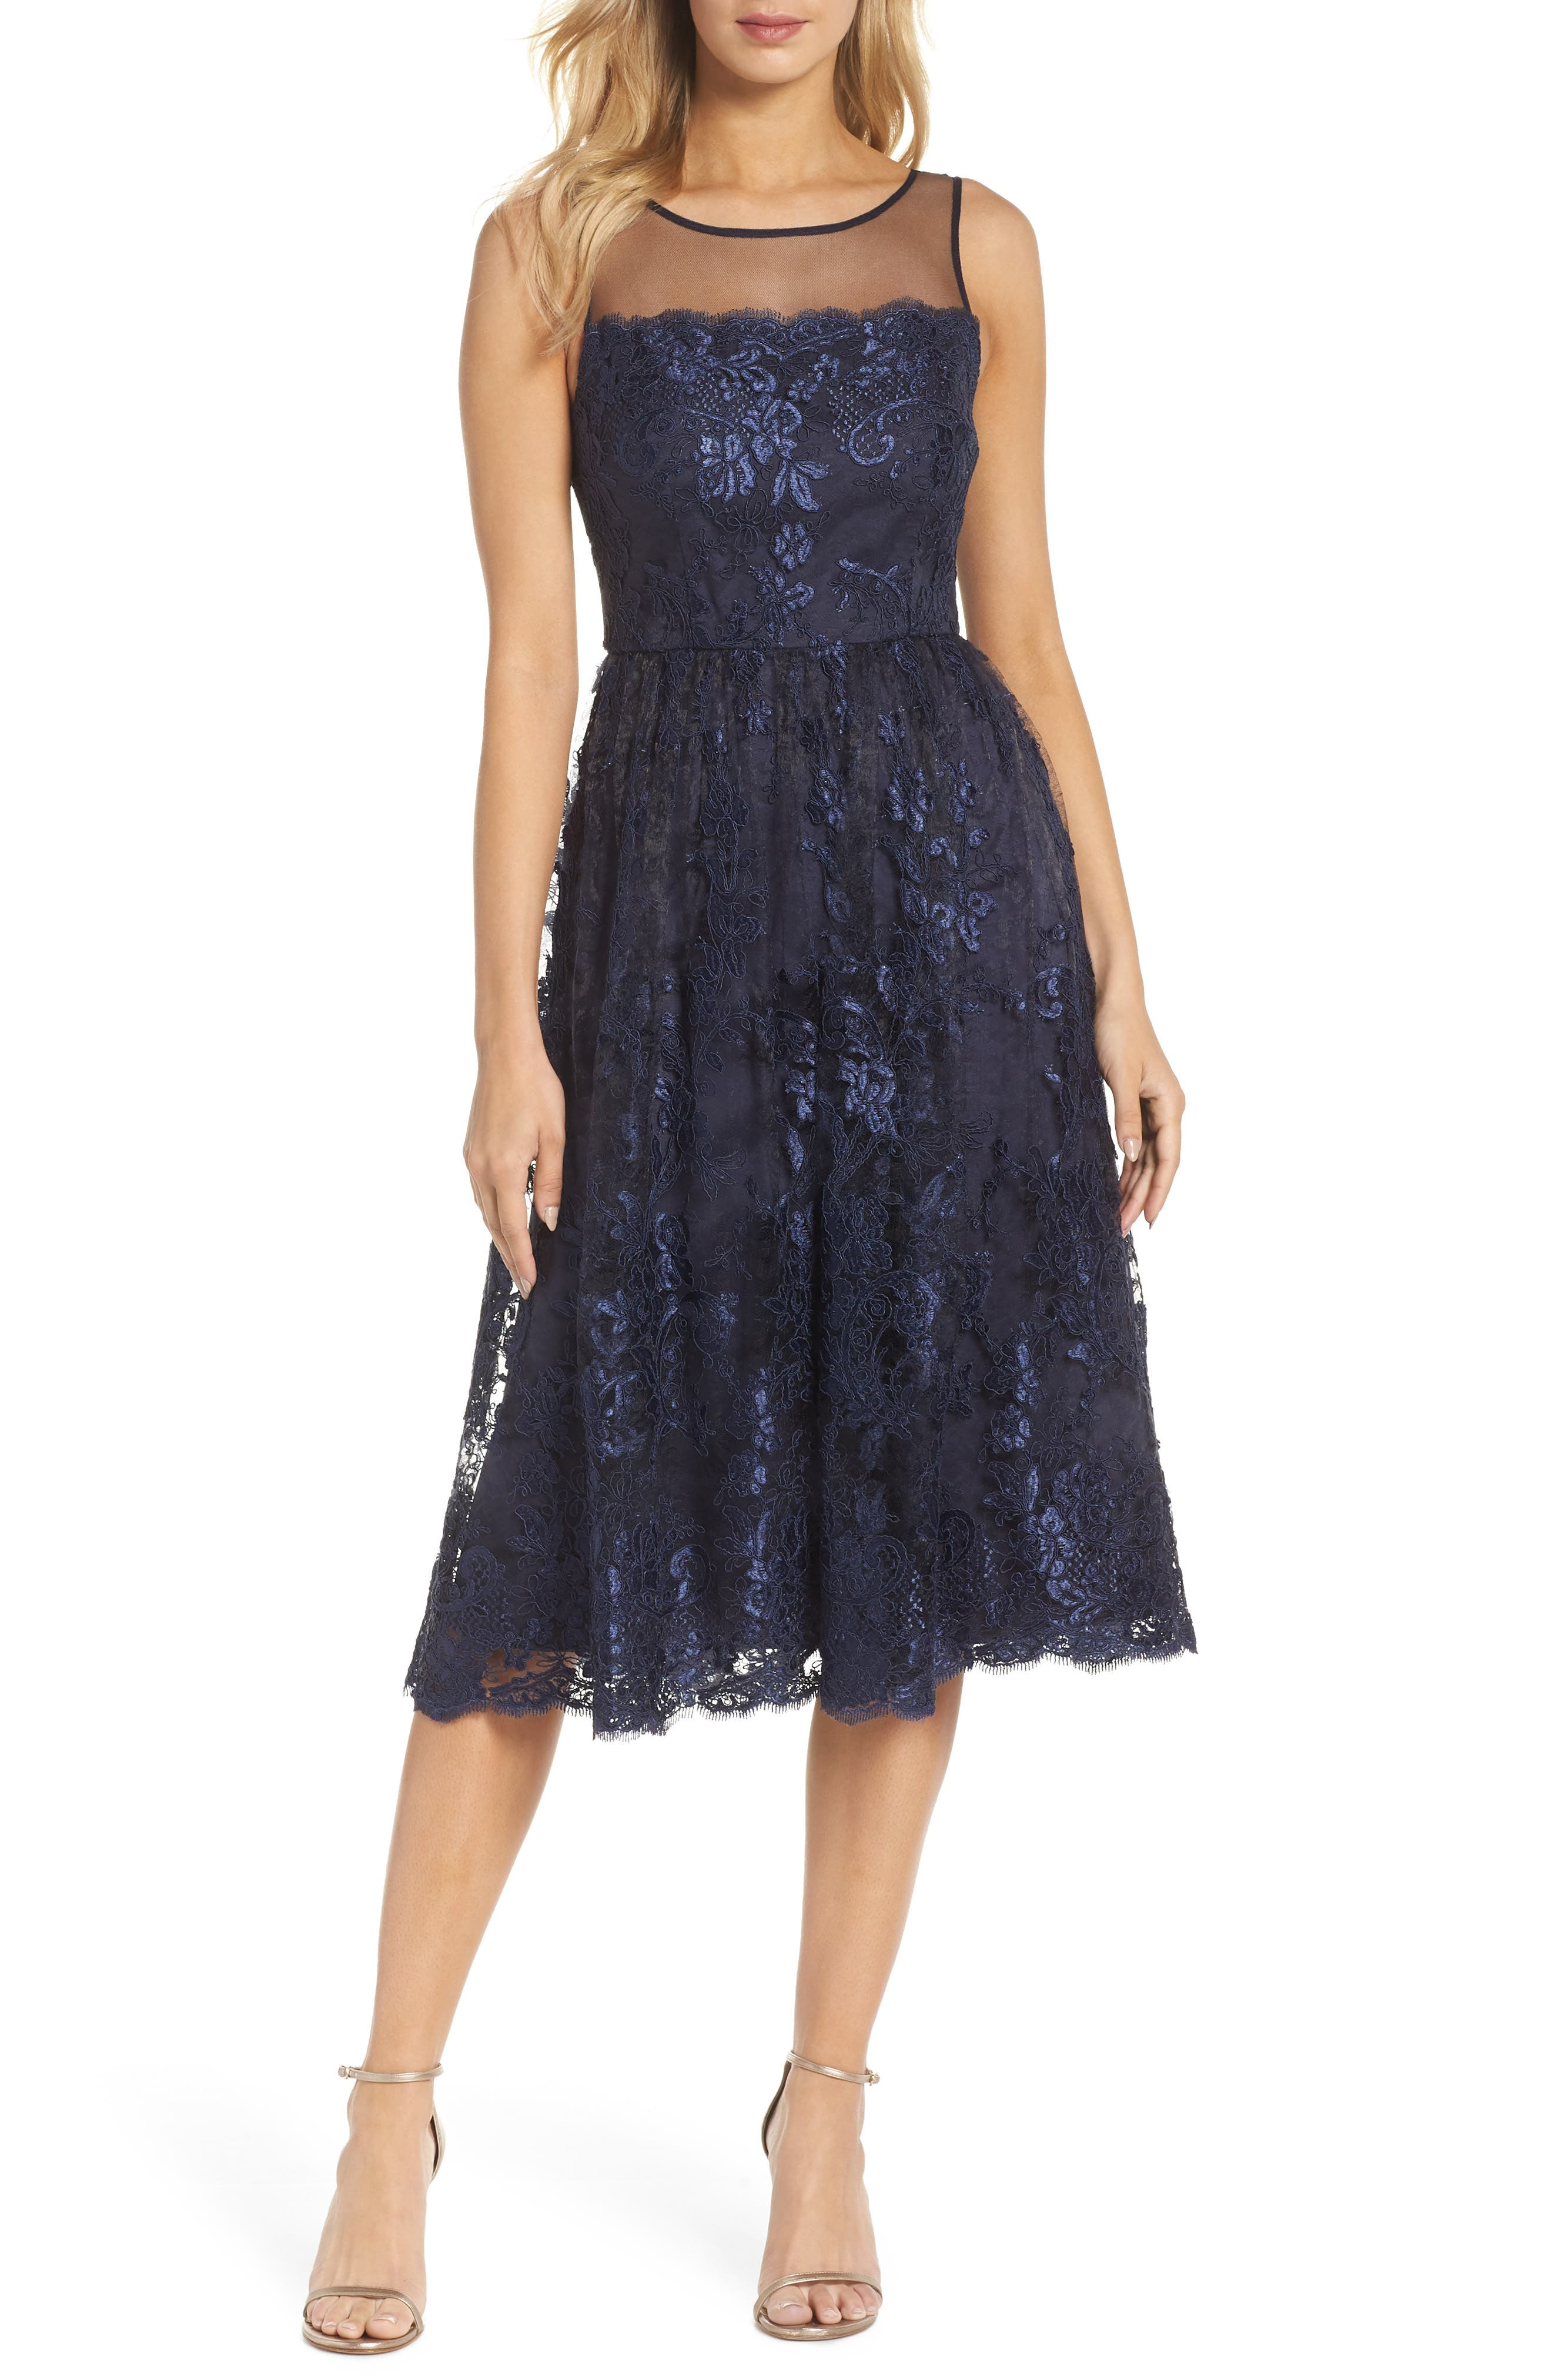 Adrianna Papell Lace Tea Length Dress (Regular & Petite)